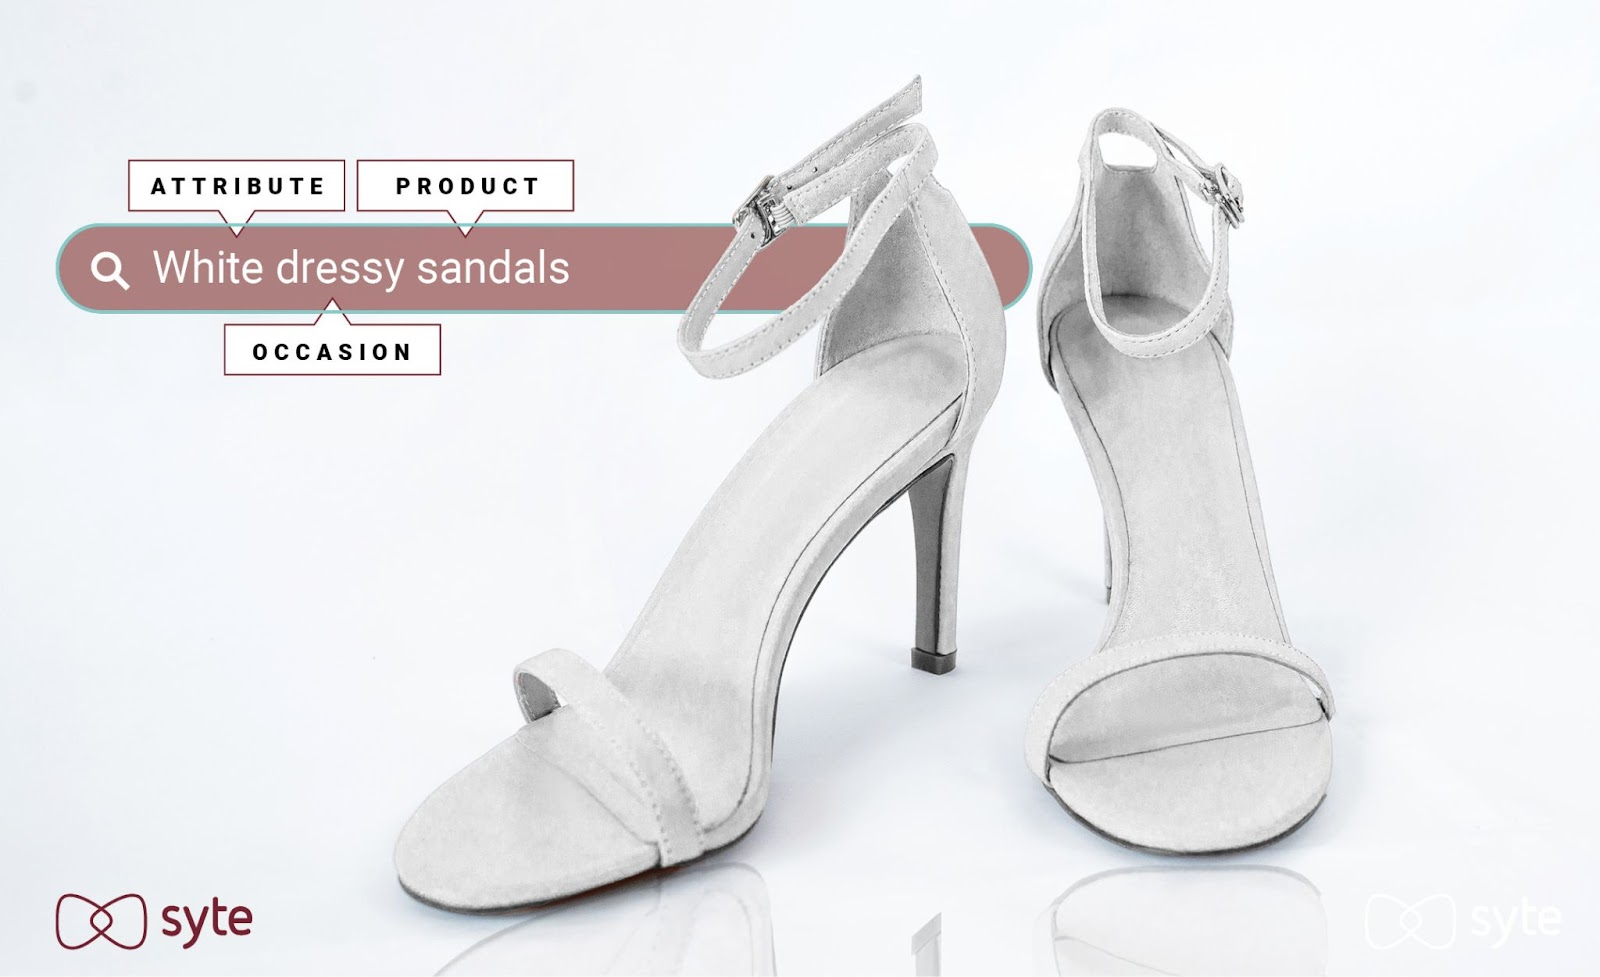 Discovery design technology: augmented site search dissects a query for white dressy sandals